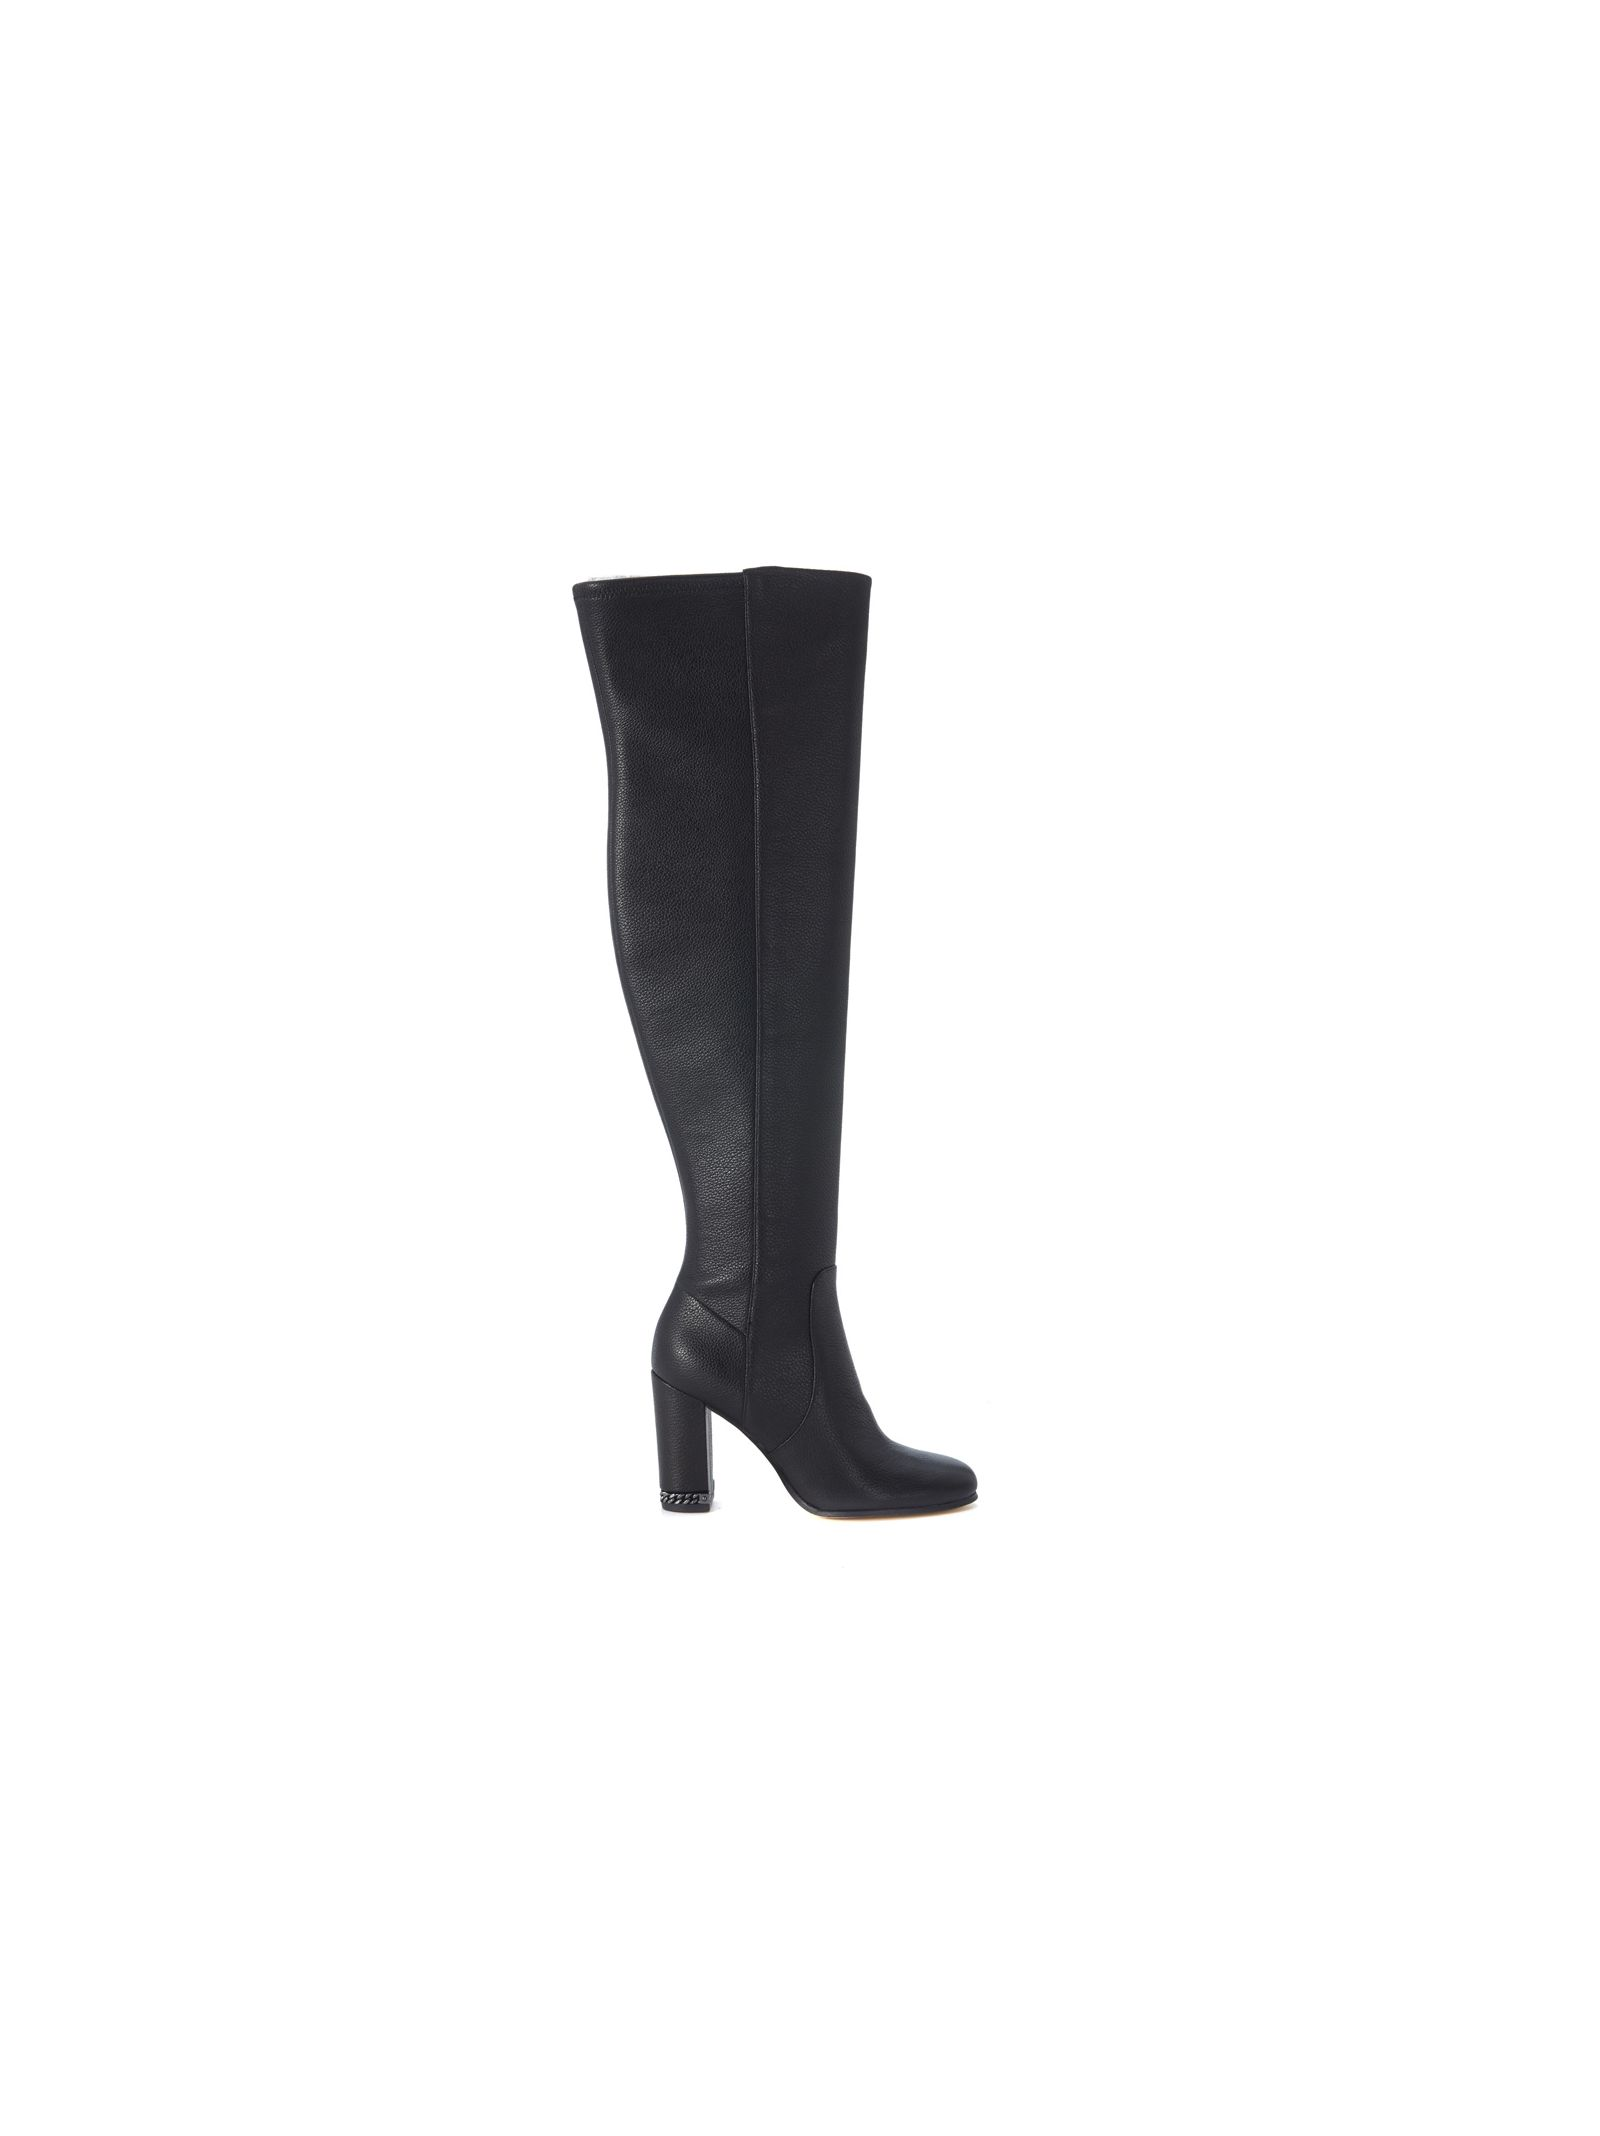 michael kors female michael kors sabrina boots in black elastic leather